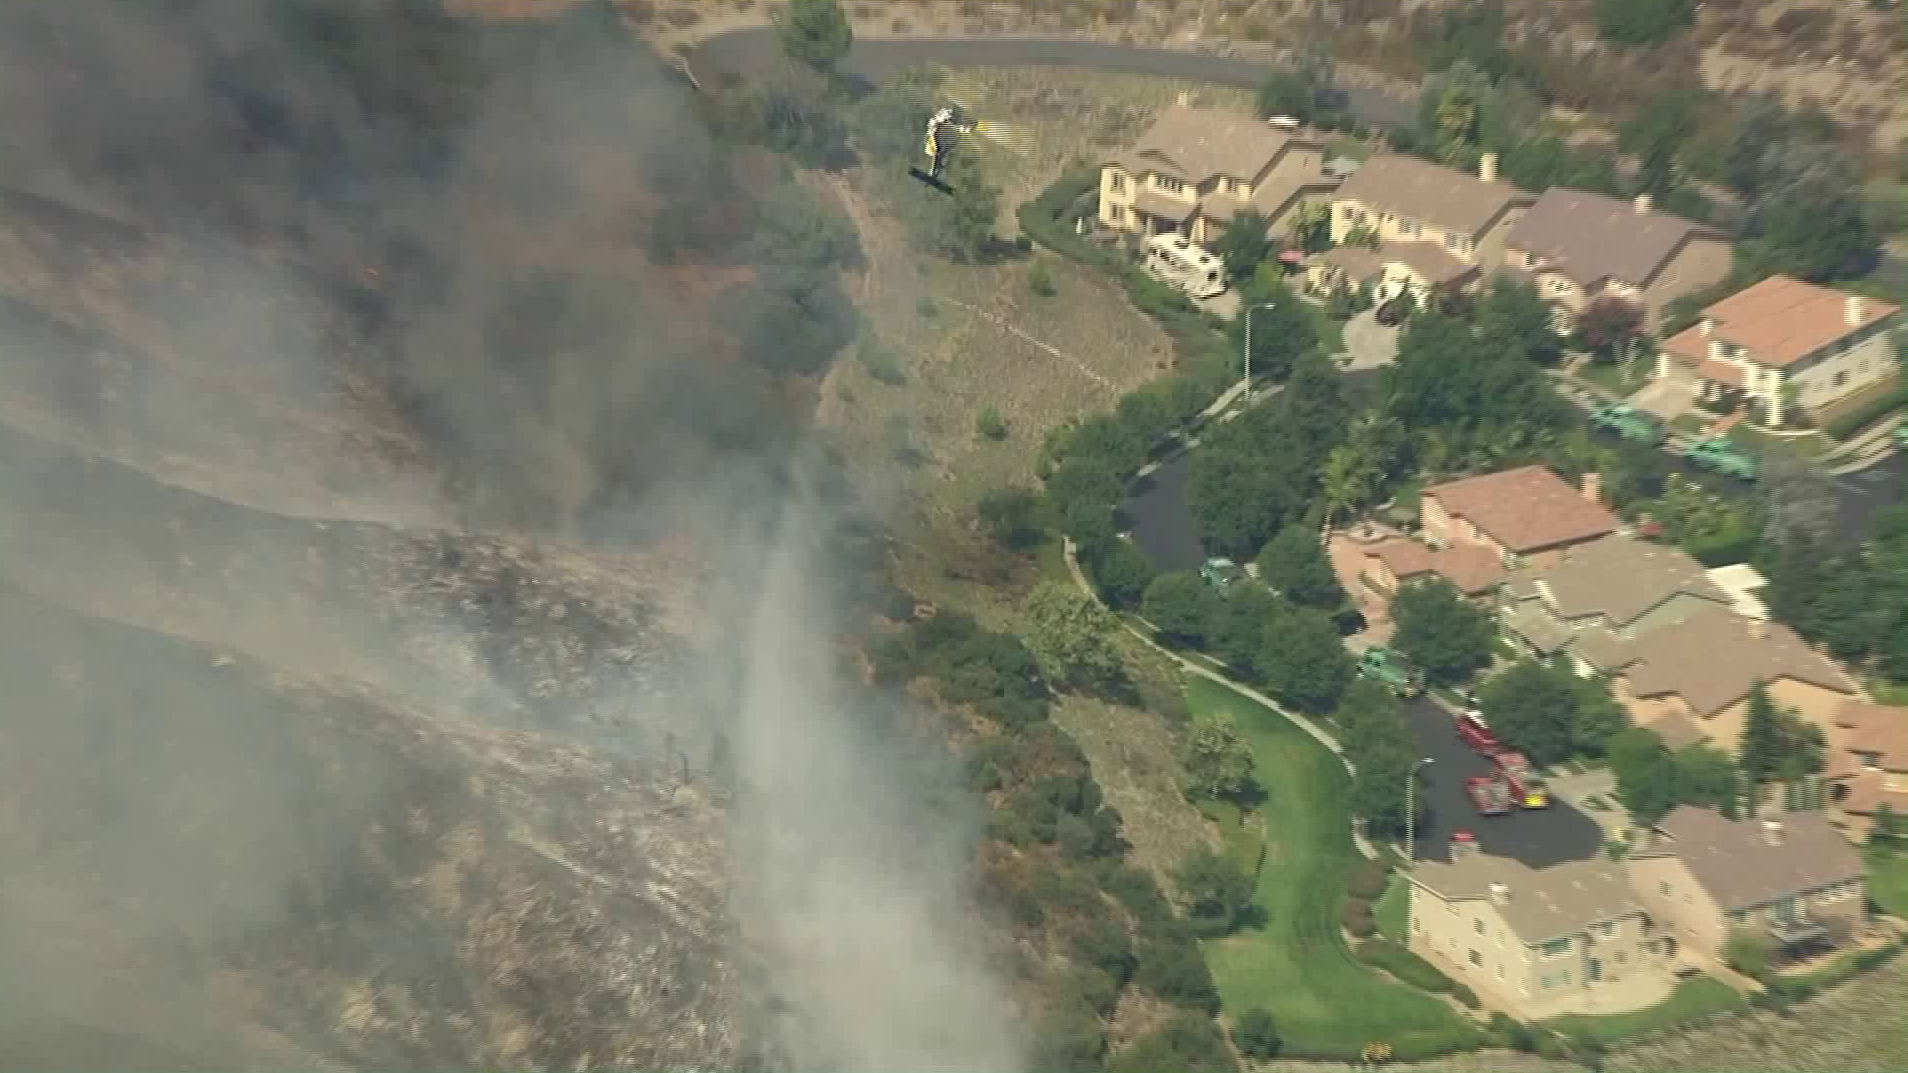 A helicopter drops water on an area of the Ranch Fire smoldering near homes in Azusa on Aug. 13, 2020. (KTLA)